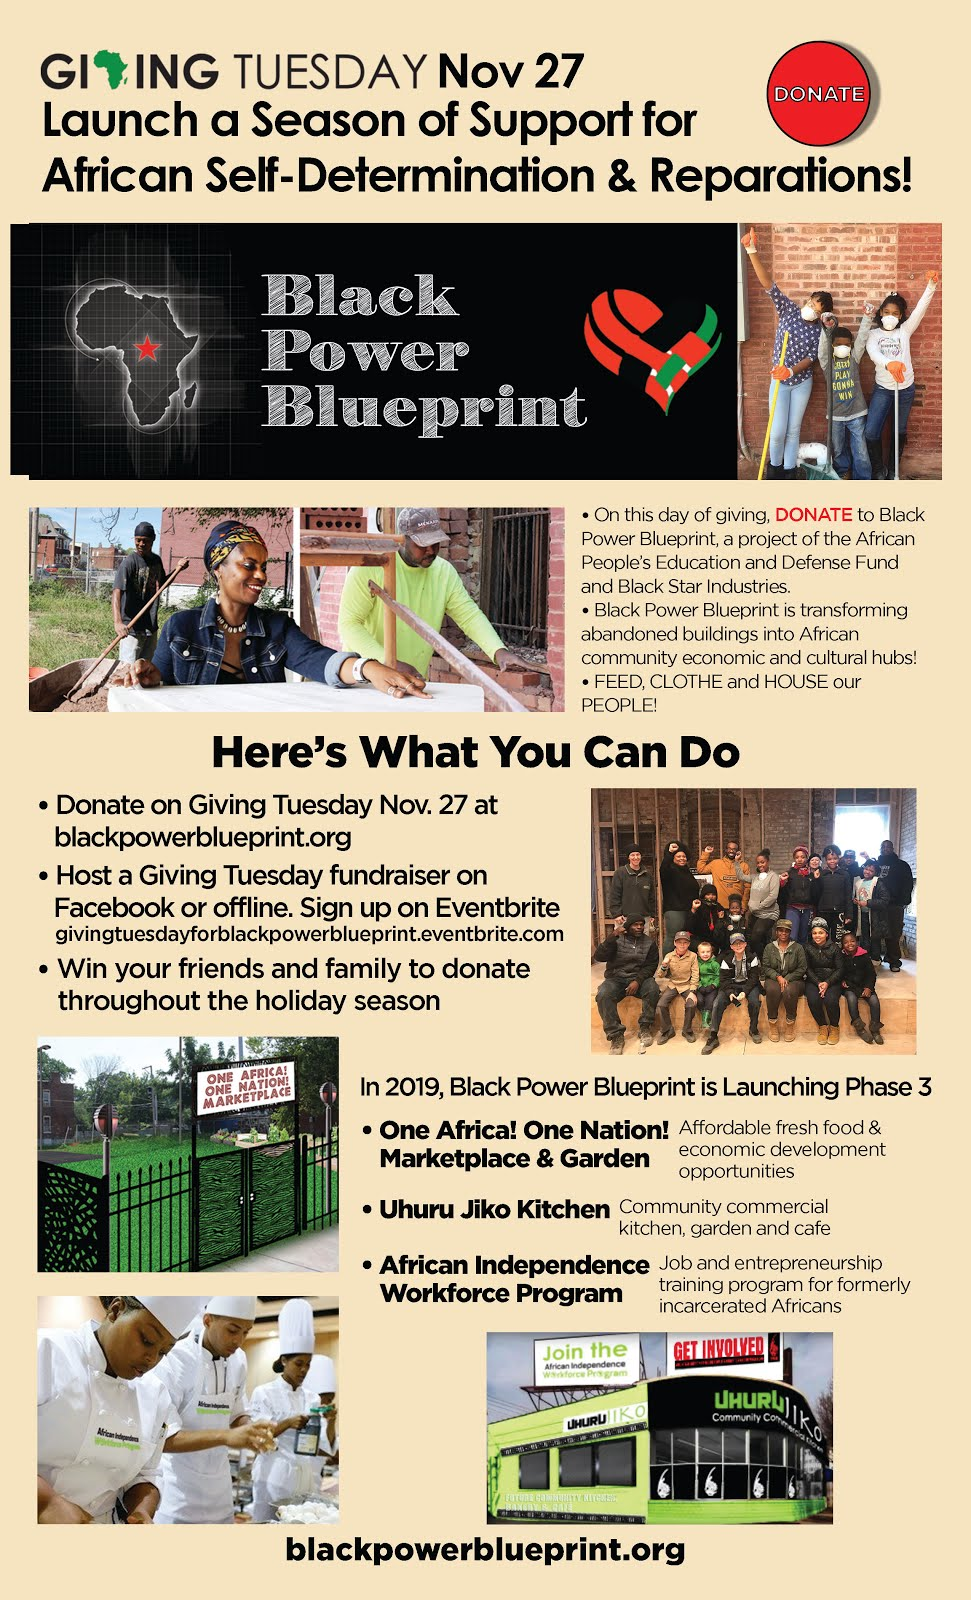 Giving Tuesday--Donate to Black Power Blueprint and Invite Your Friends to Donate